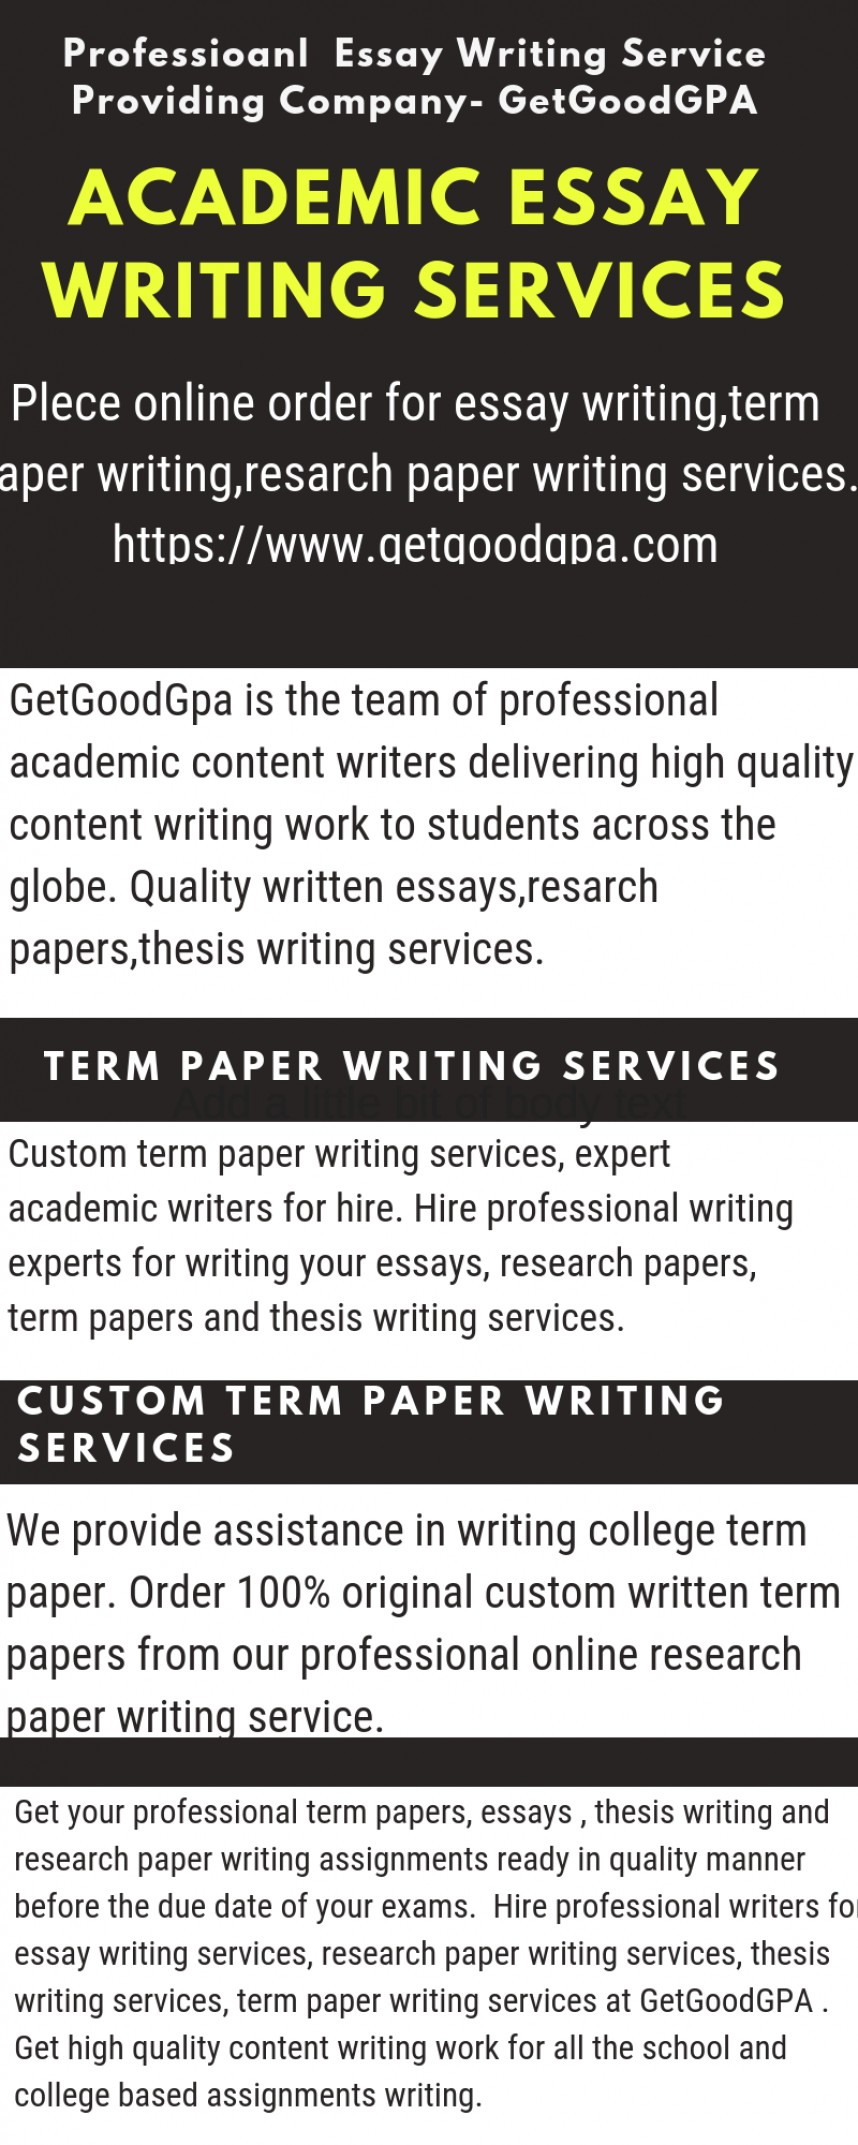 021 Research Paper Custom Writing Frightening Term Service Services